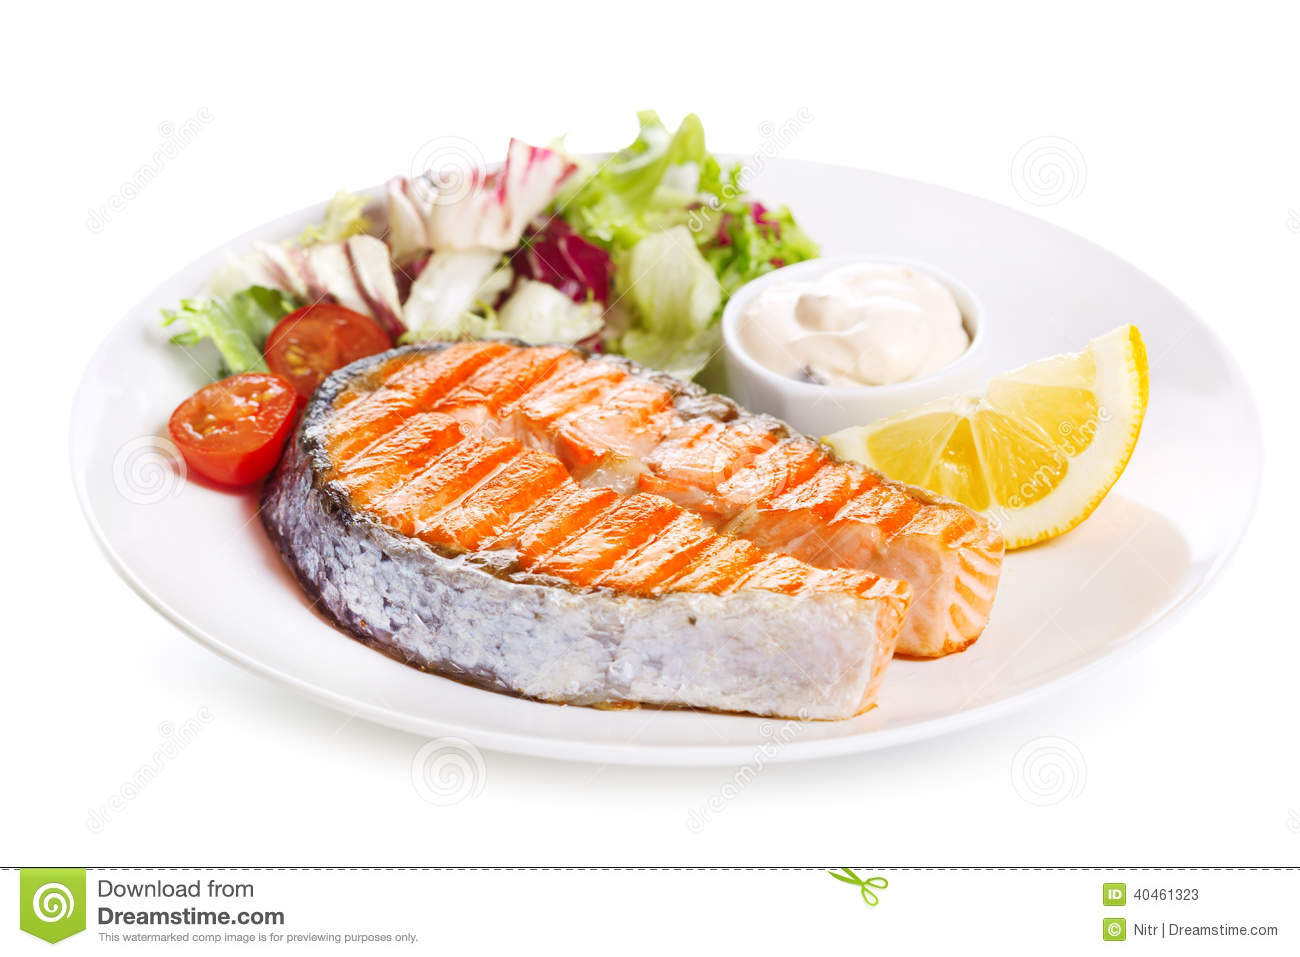 Plate of grilled salmon steak with vegetables